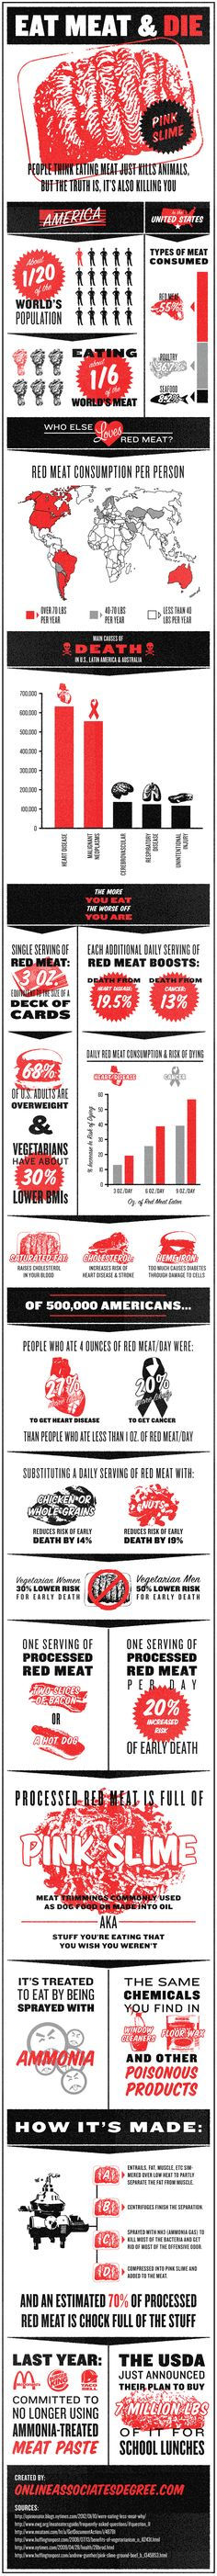 Eat meat & Die #infographic